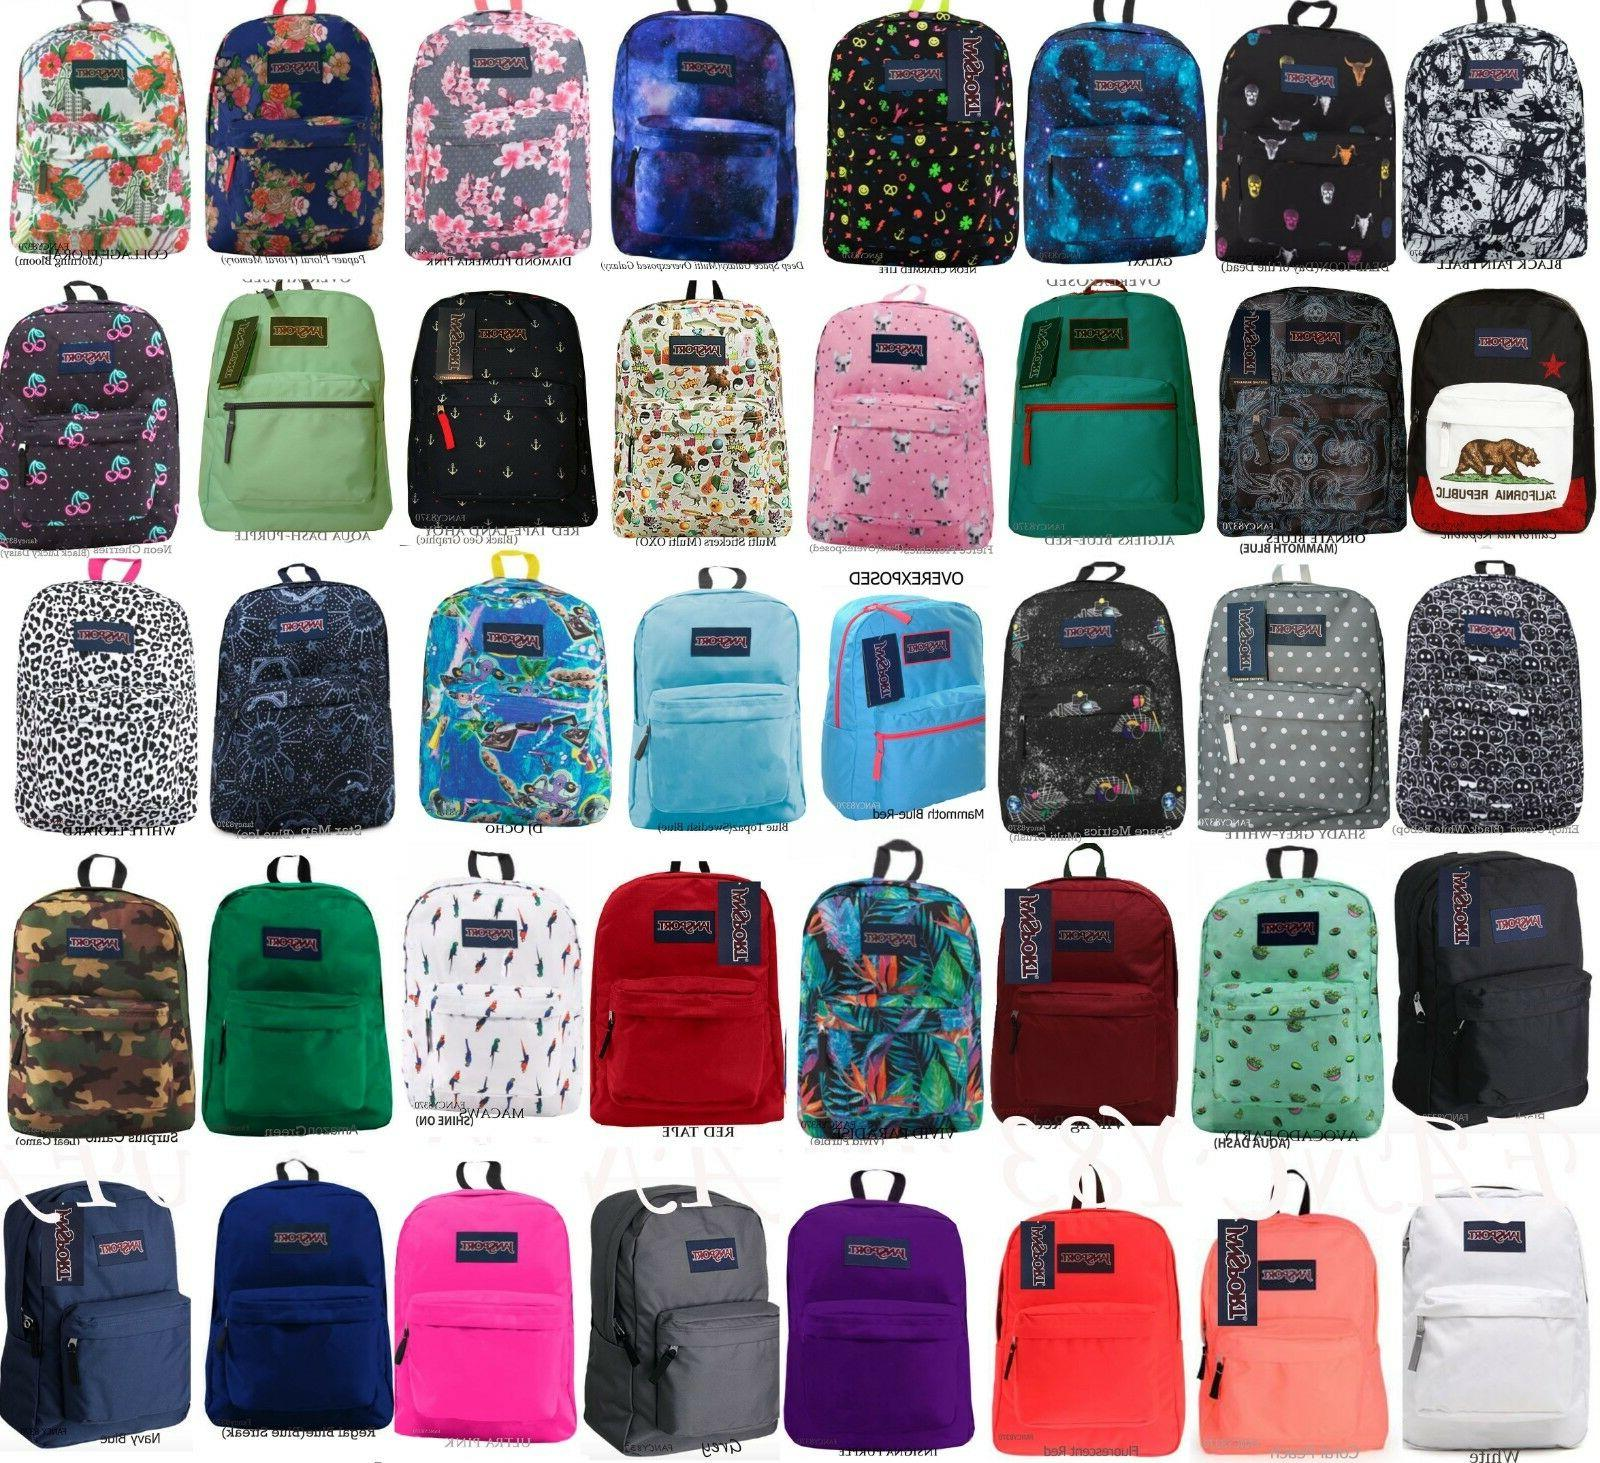 superbreak backpack 100 percent authentic school bag